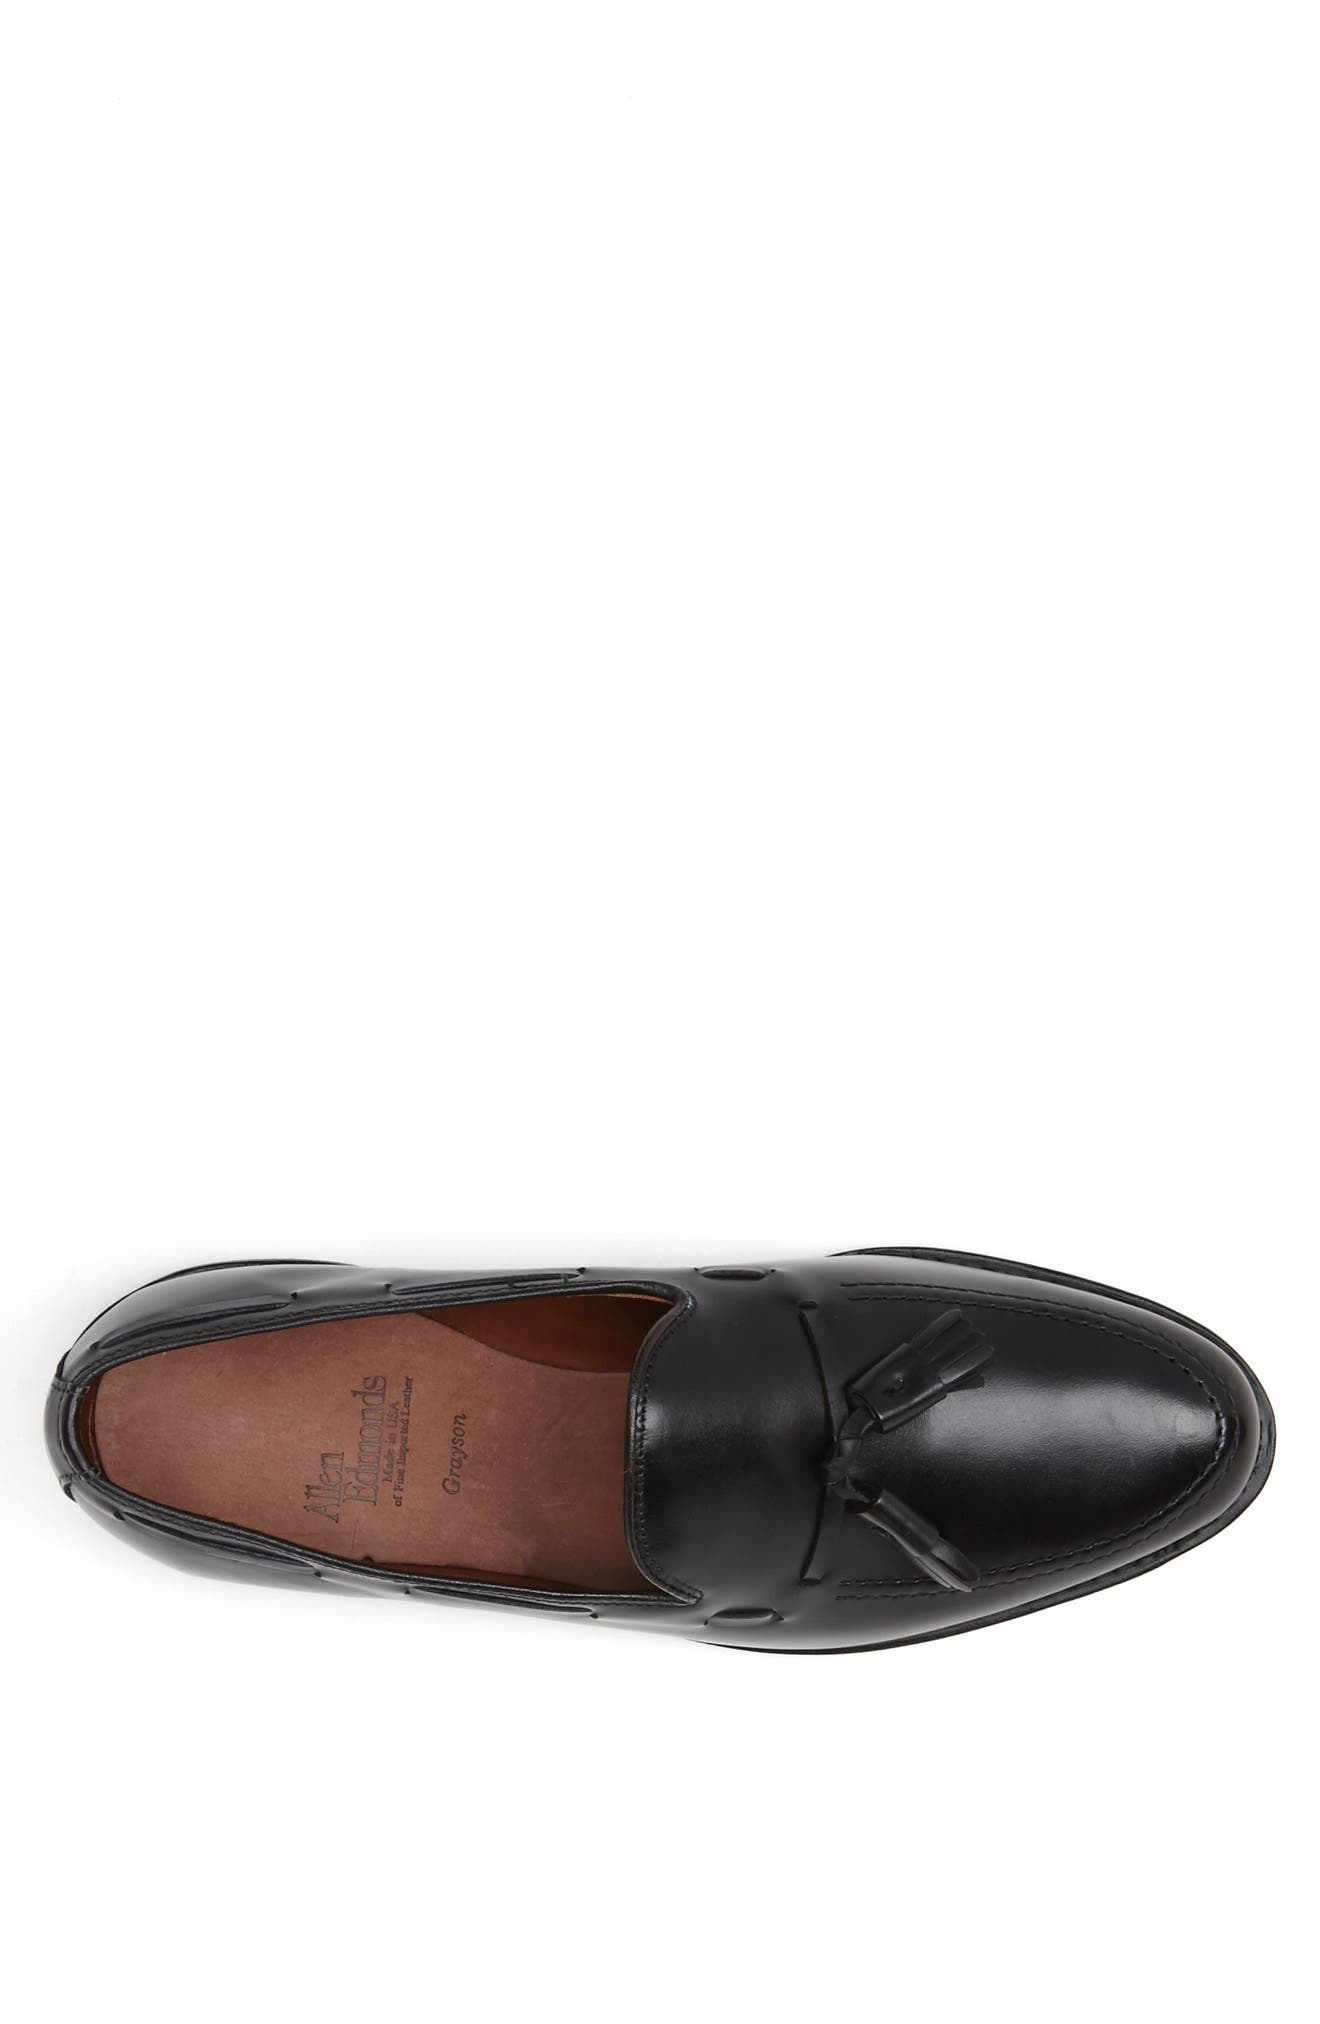 'Grayson' Tassel Loafer,                             Alternate thumbnail 3, color,                             Black Leather